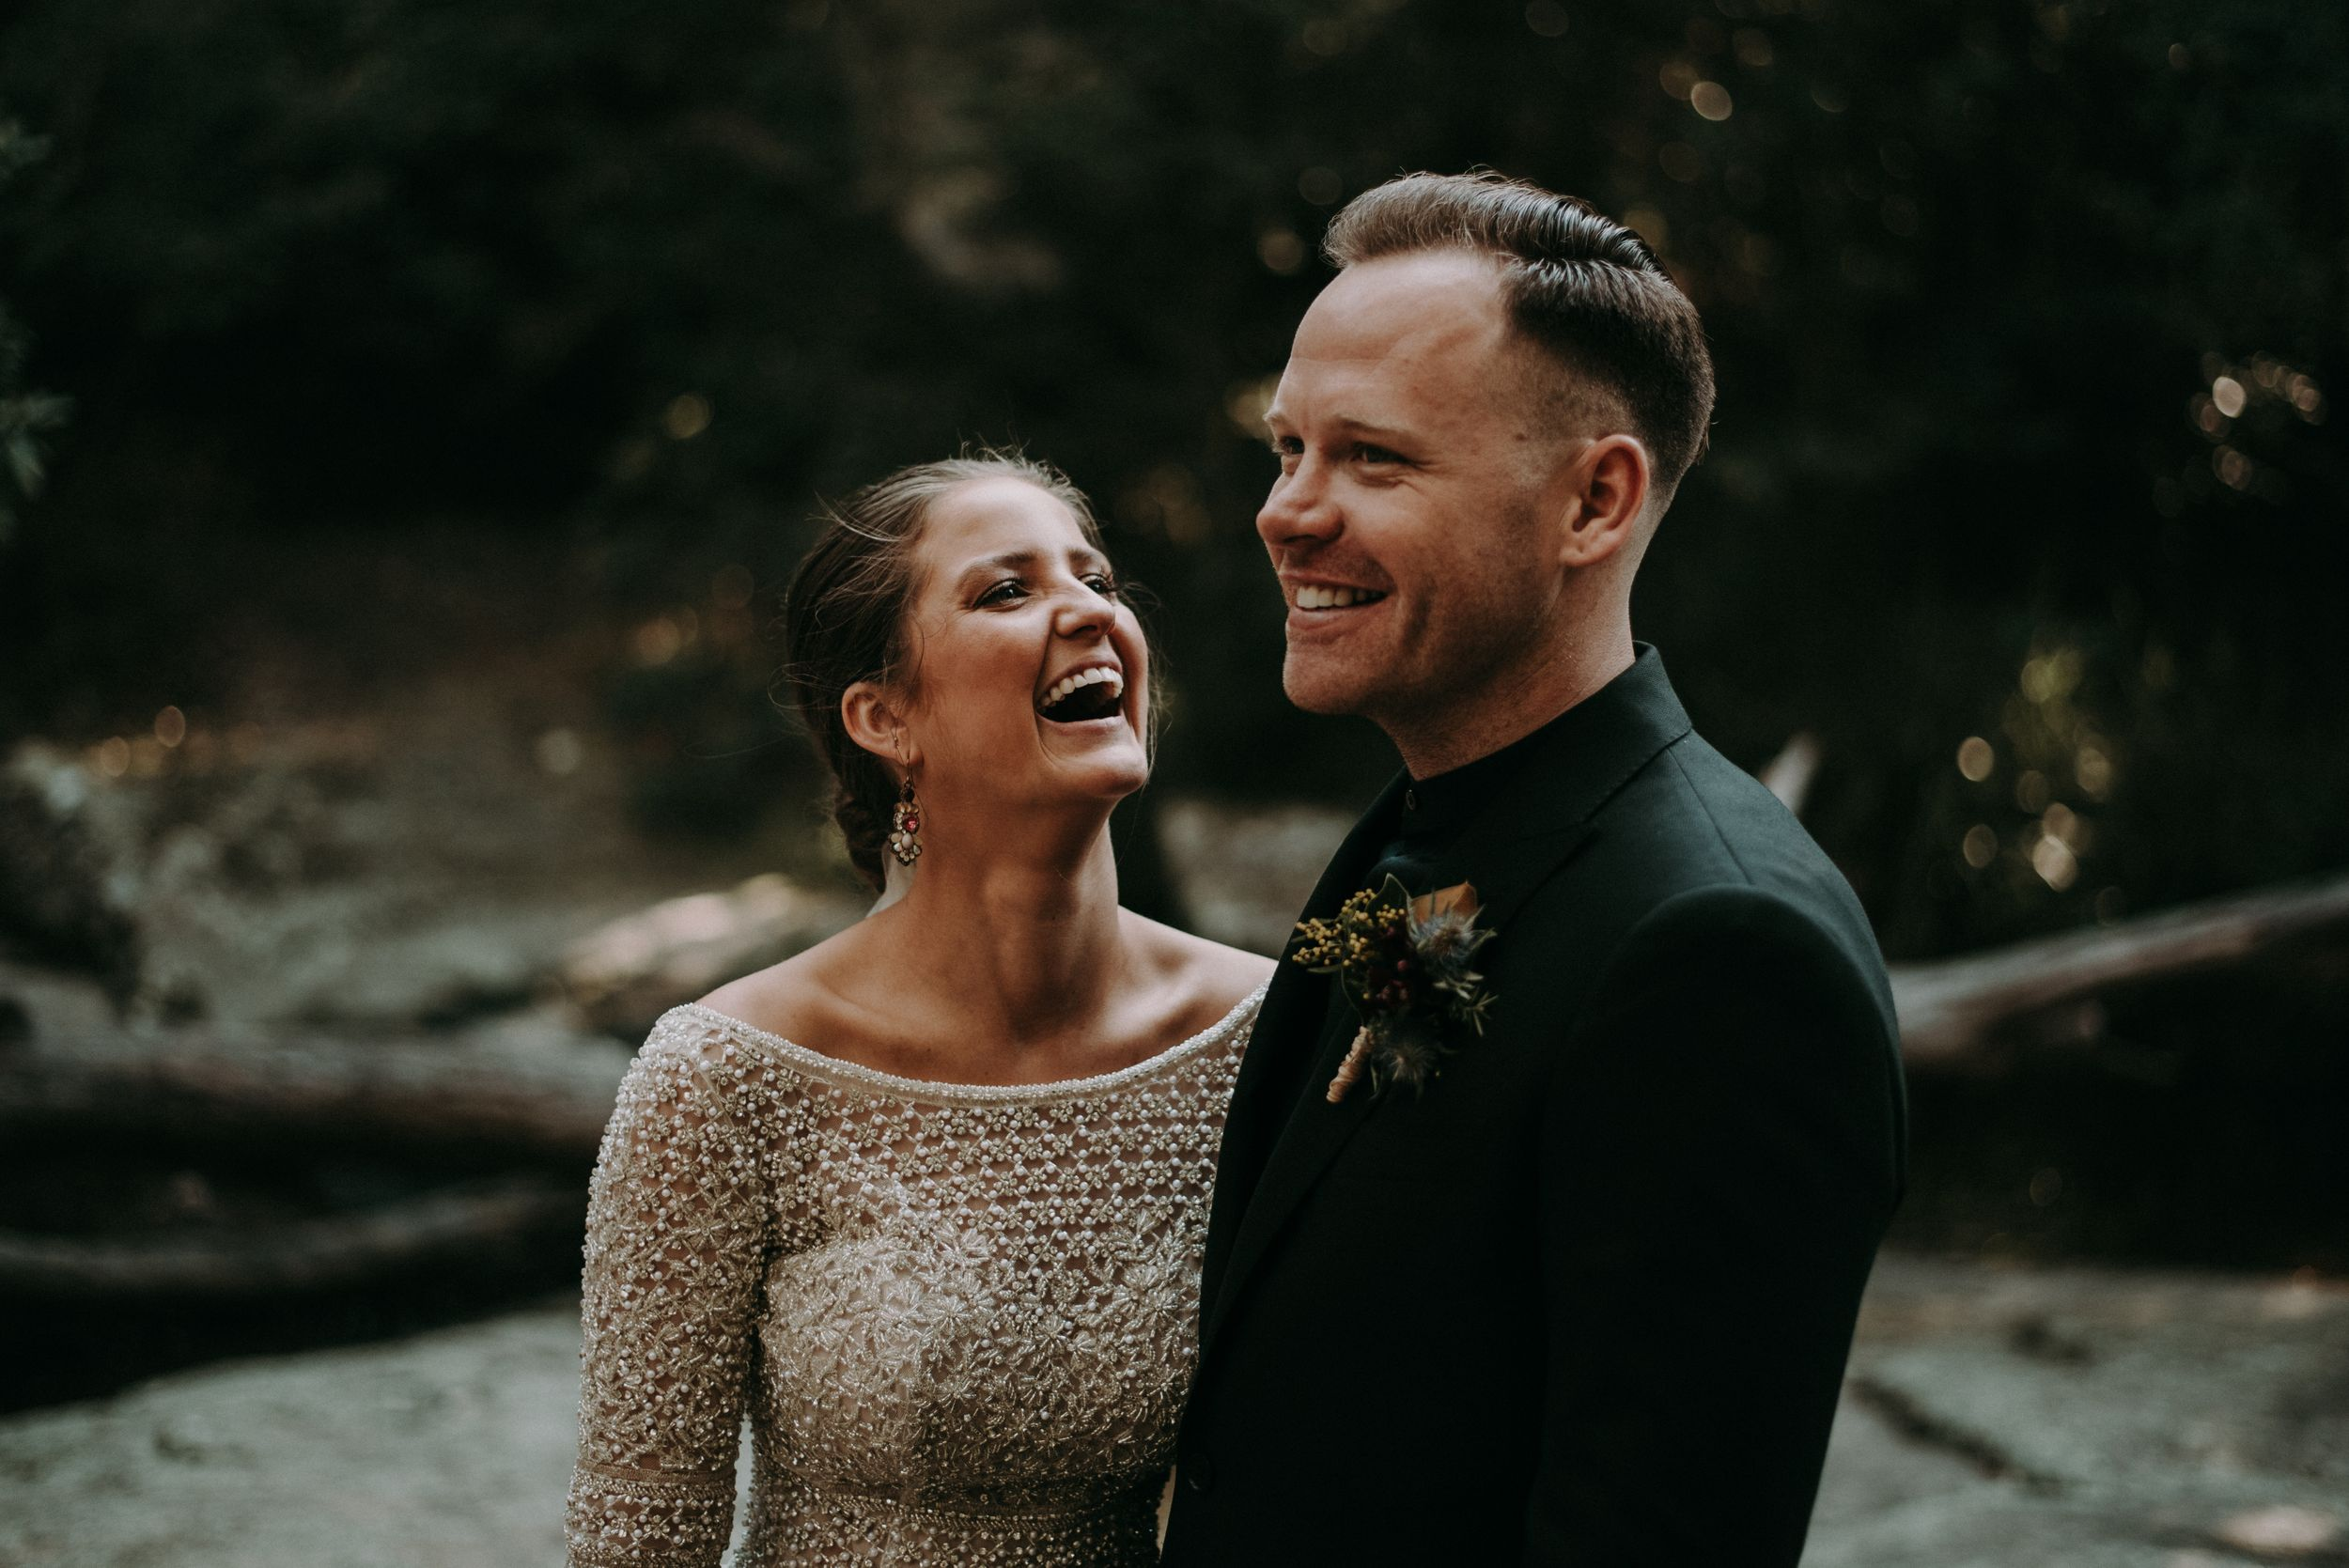 moody wedding photography of bride laughing in glenrock forest newcastle